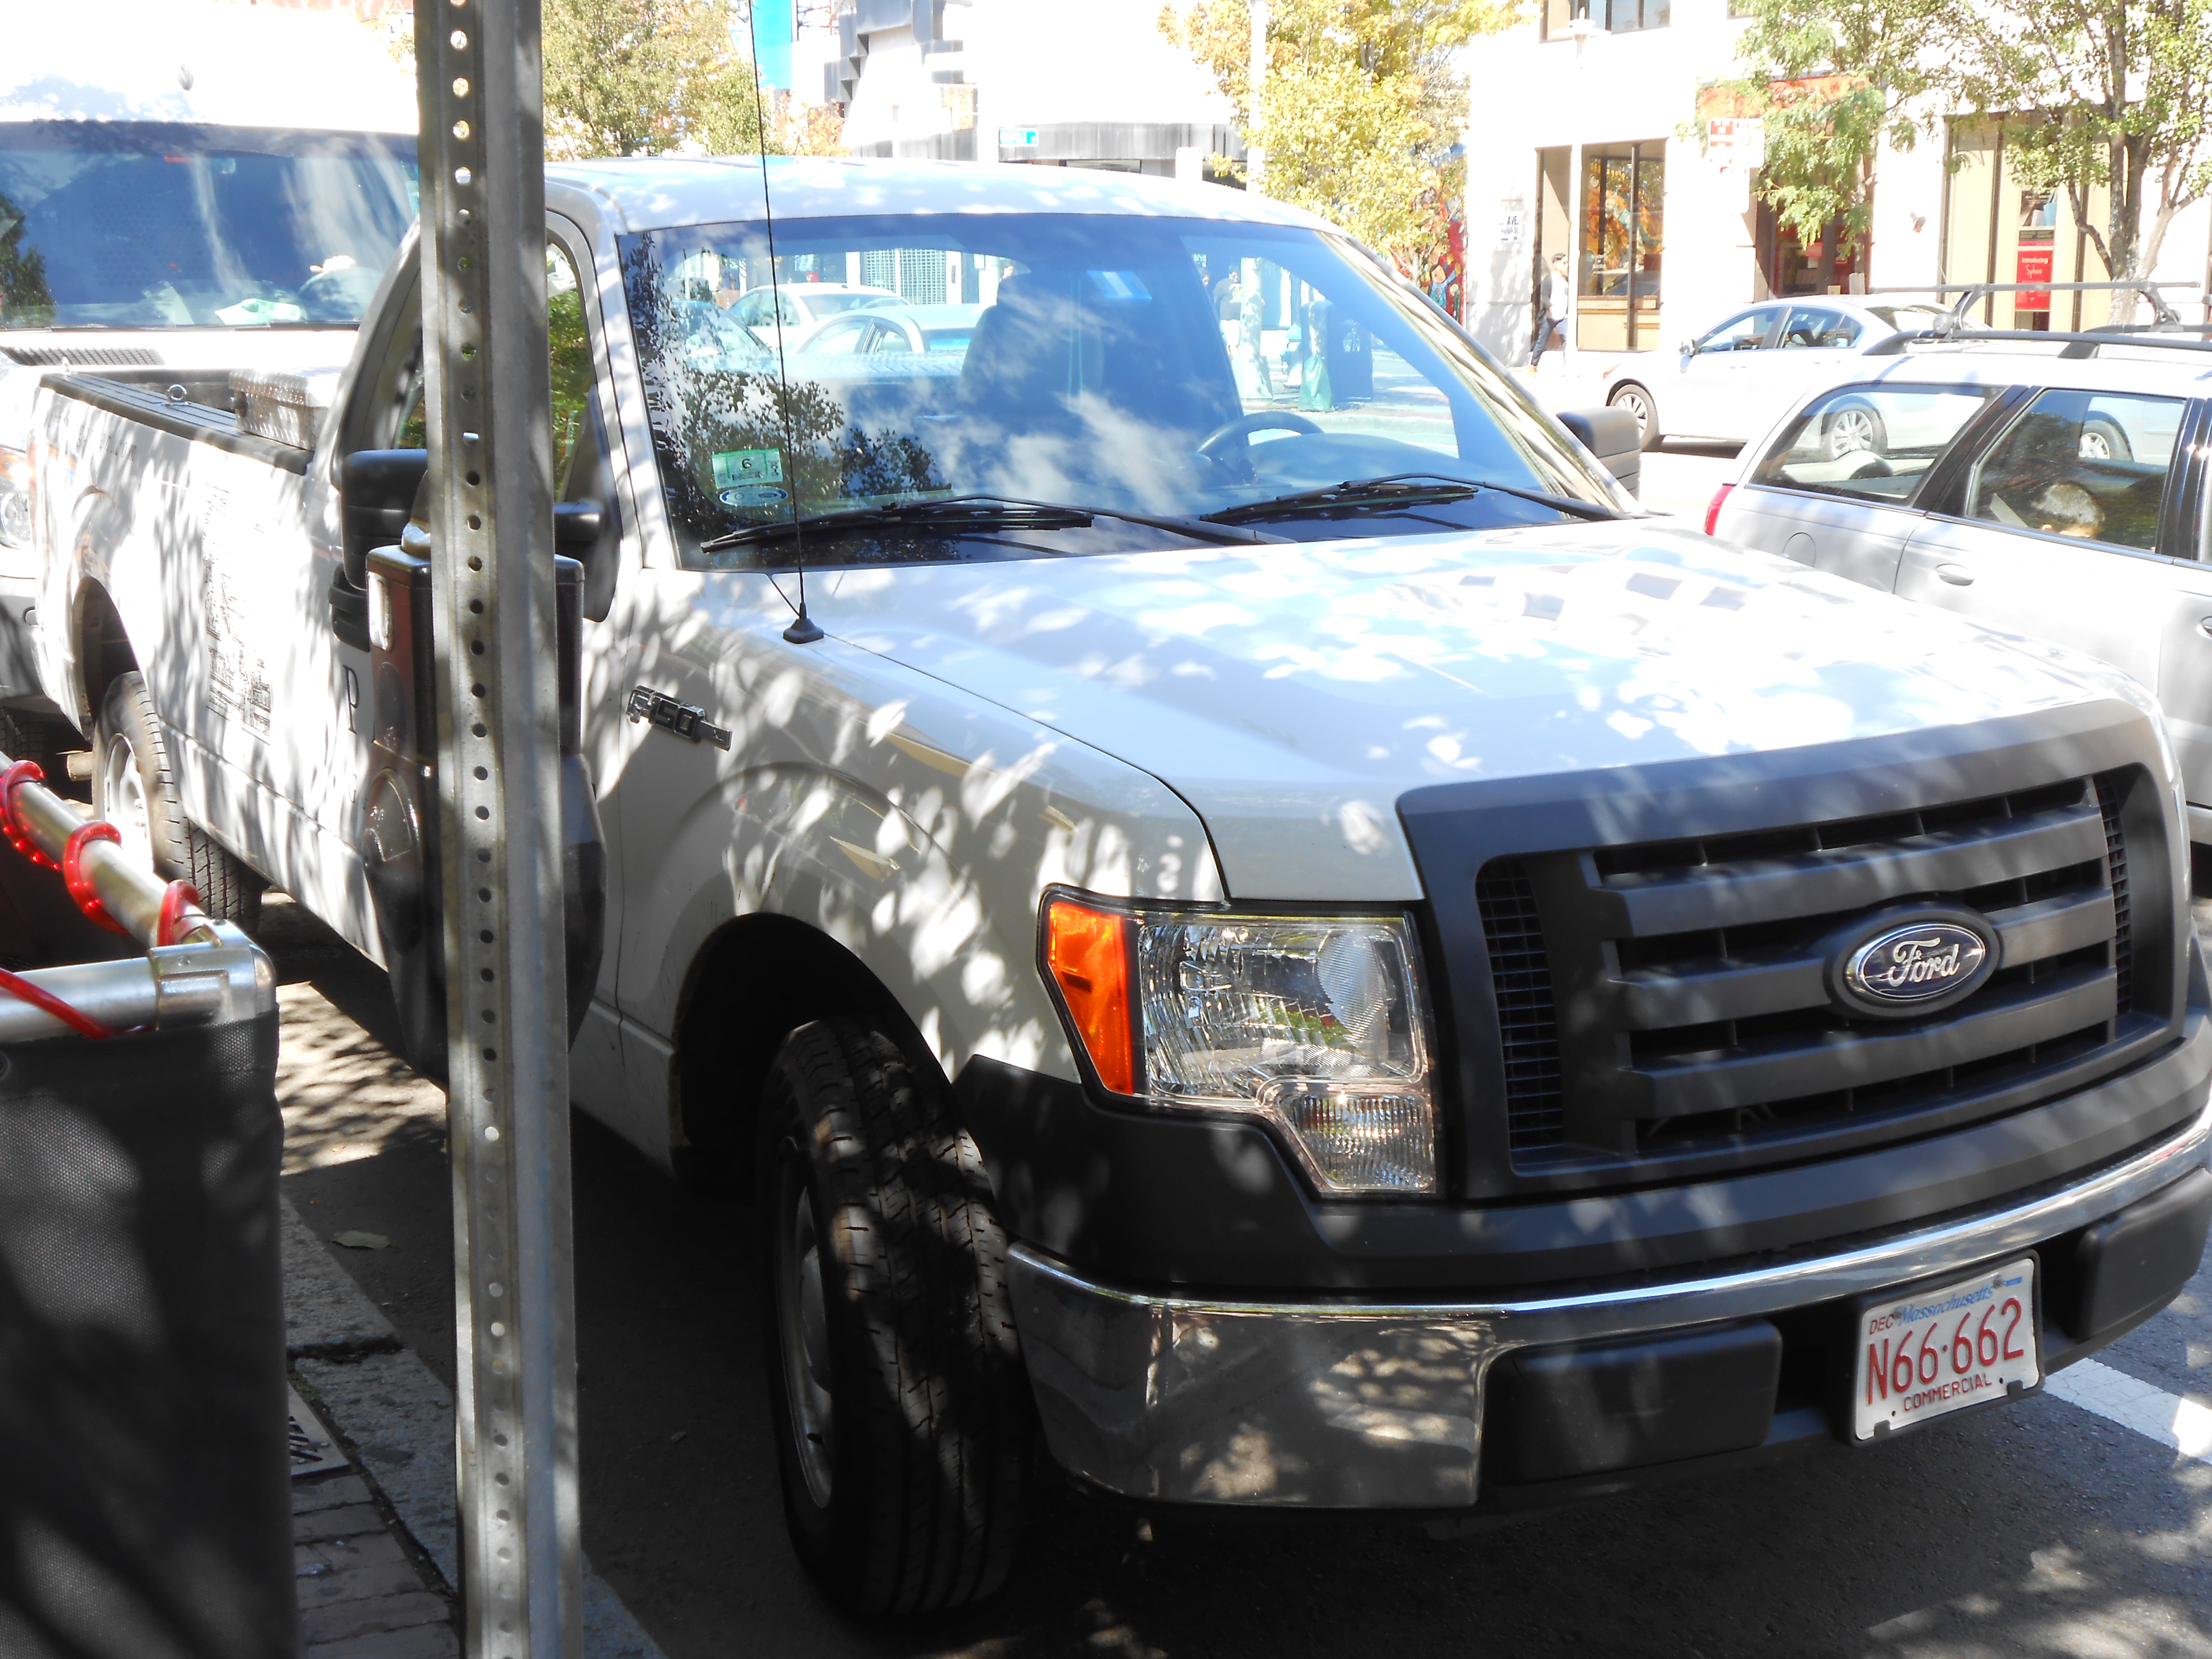 This U201cParterre Garden Servicesu201d Truck Has Been Parked Near The Sidewalk  Many Times In The Harvey Industries Parking Lot In Waltham, Parked With Its  License ...